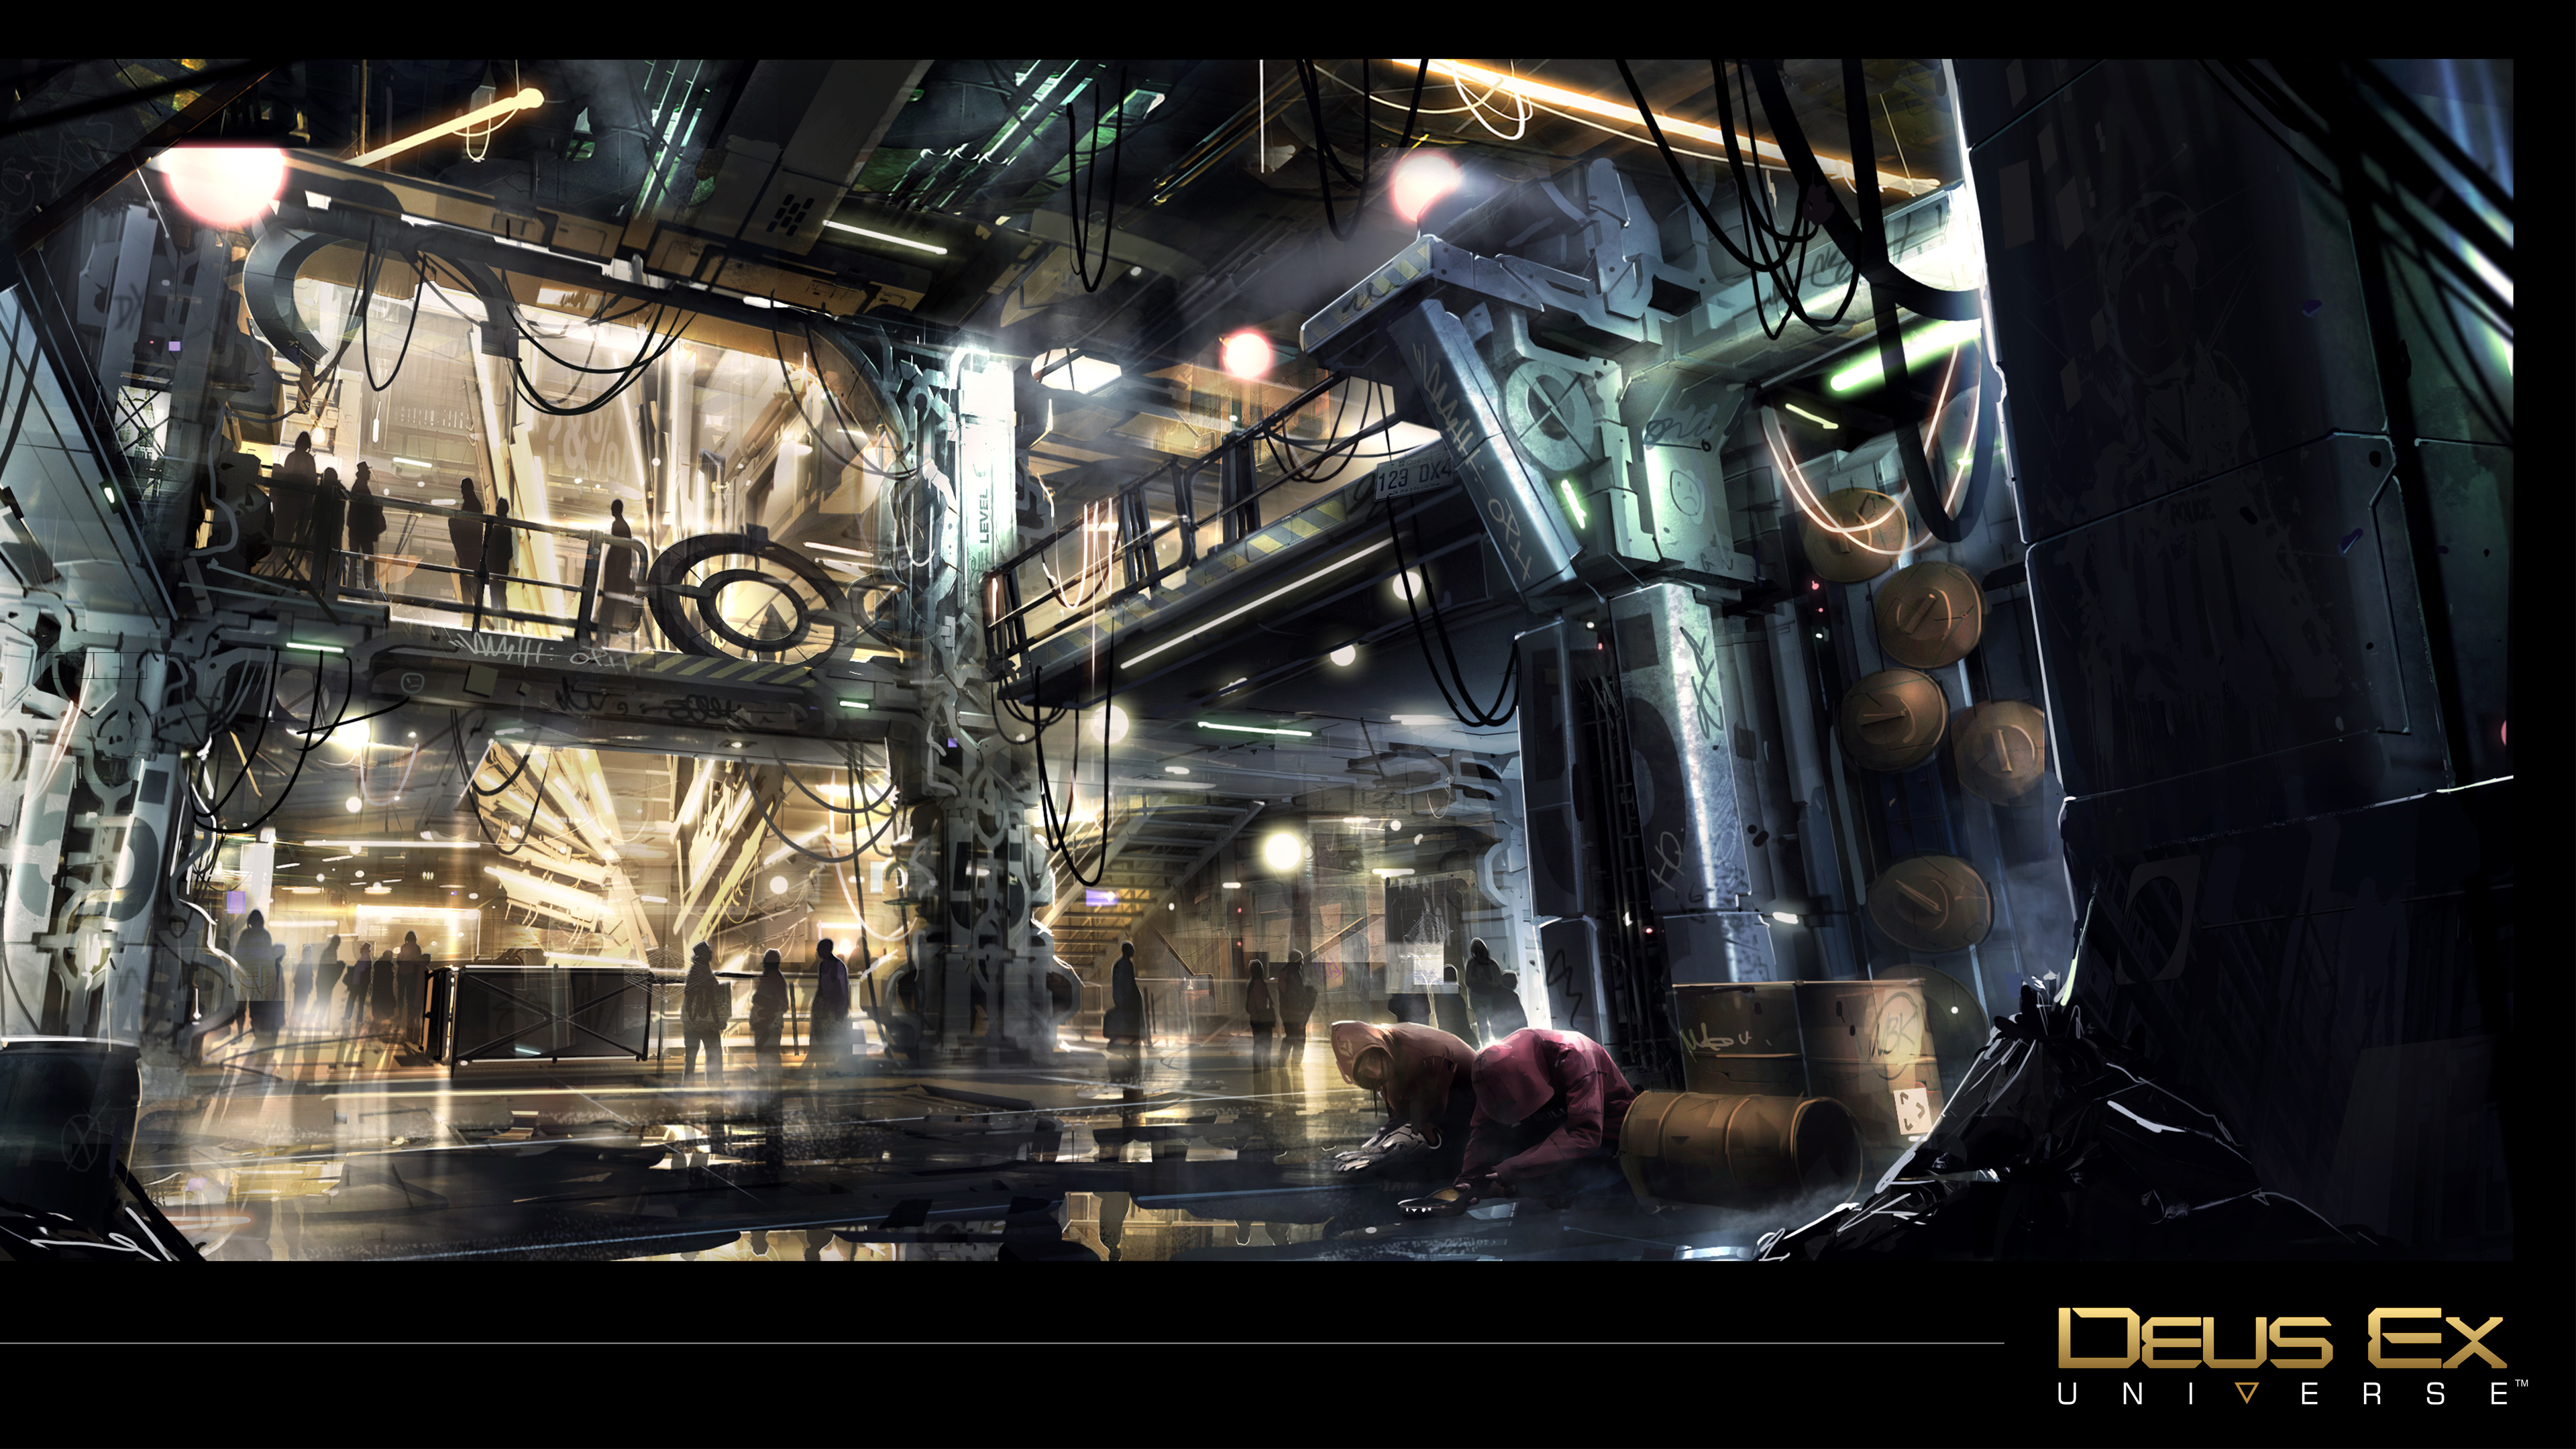 HD Wallpapers Deus Ex Mankind Divided